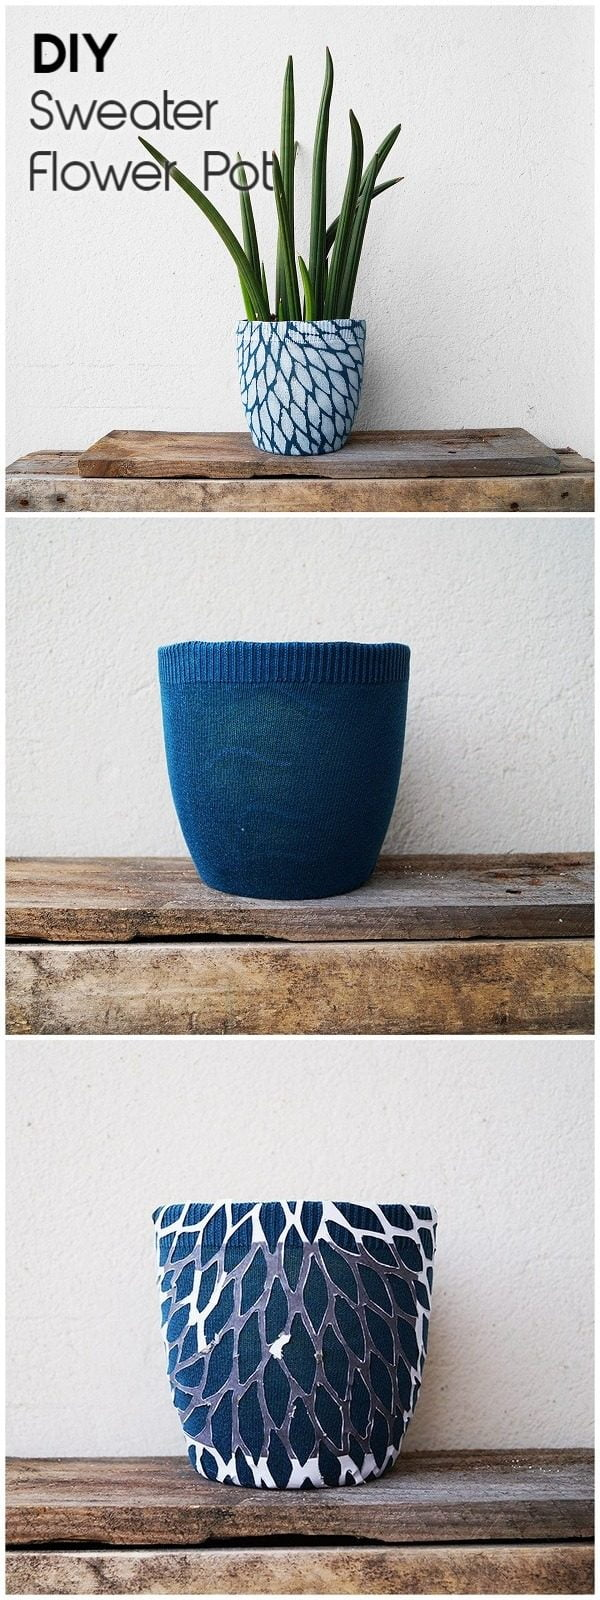 Check out this easy idea on how to make a #DIY flower pot with a sweater cover #HomeDecorIdeas